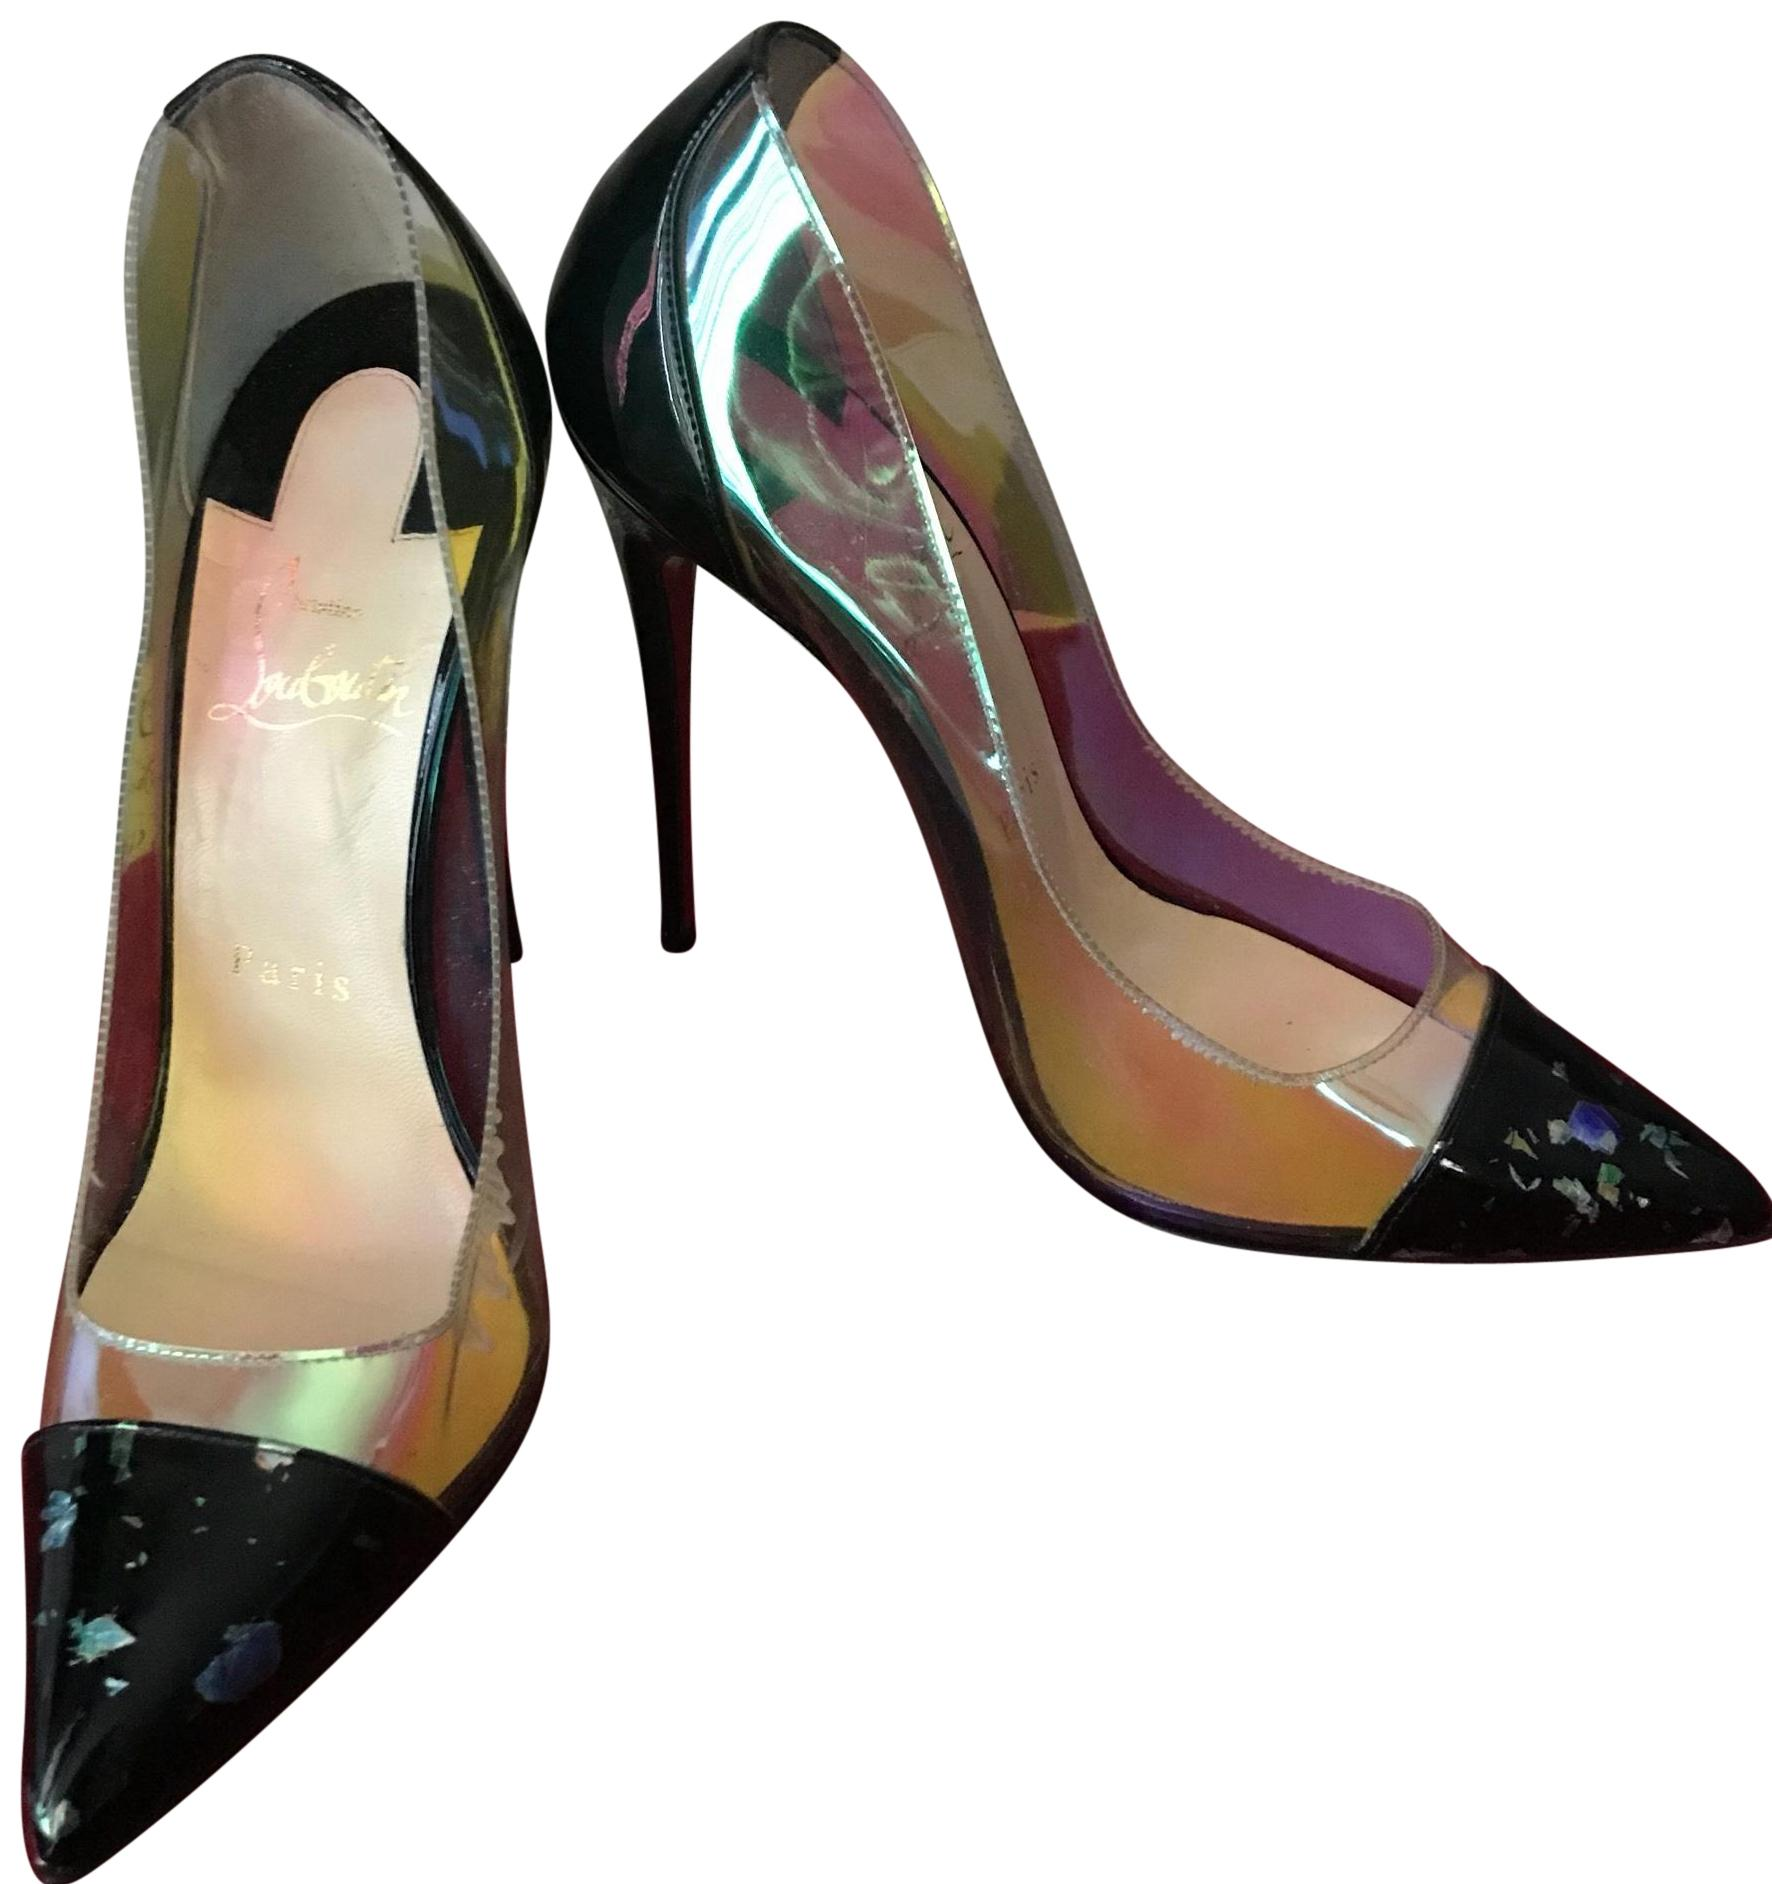 fadf0fc9070 coupon code for christian louboutin black pvc clear pumps f46ce b1a8c